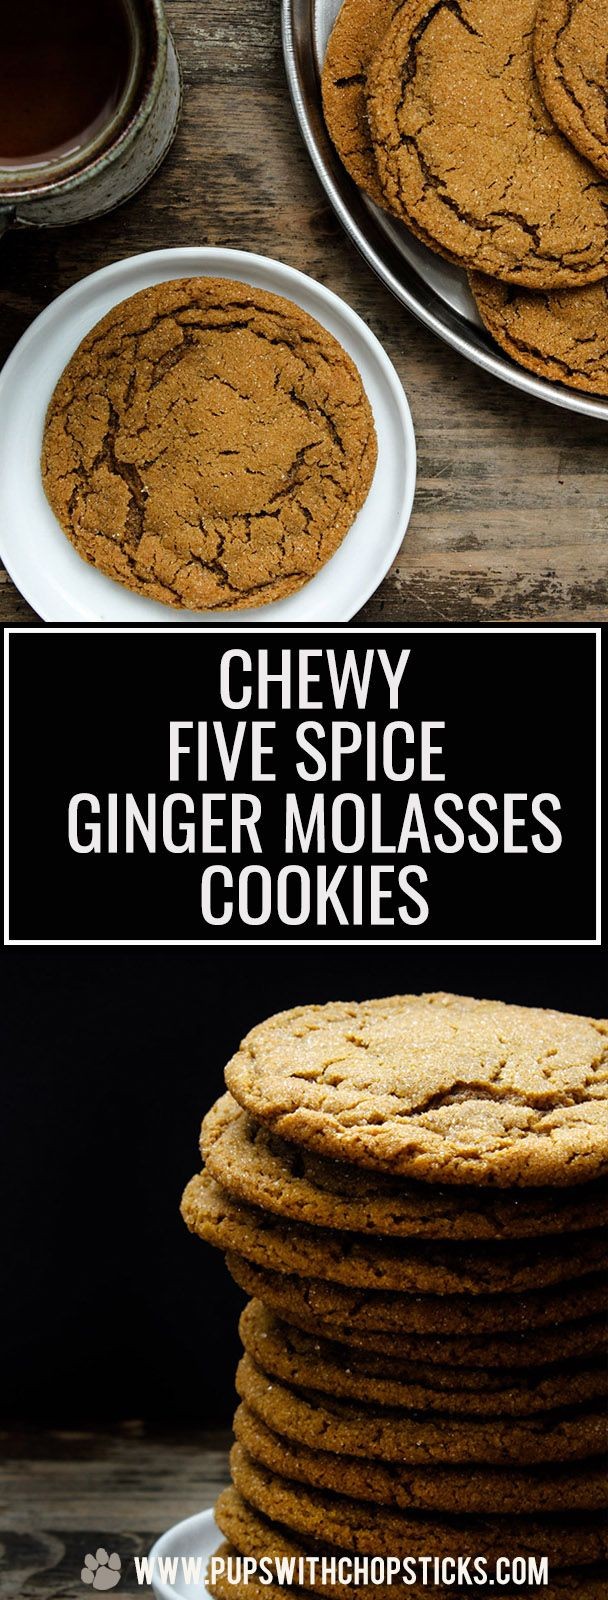 Chewy Five Spice Ginger Molasses Cookies